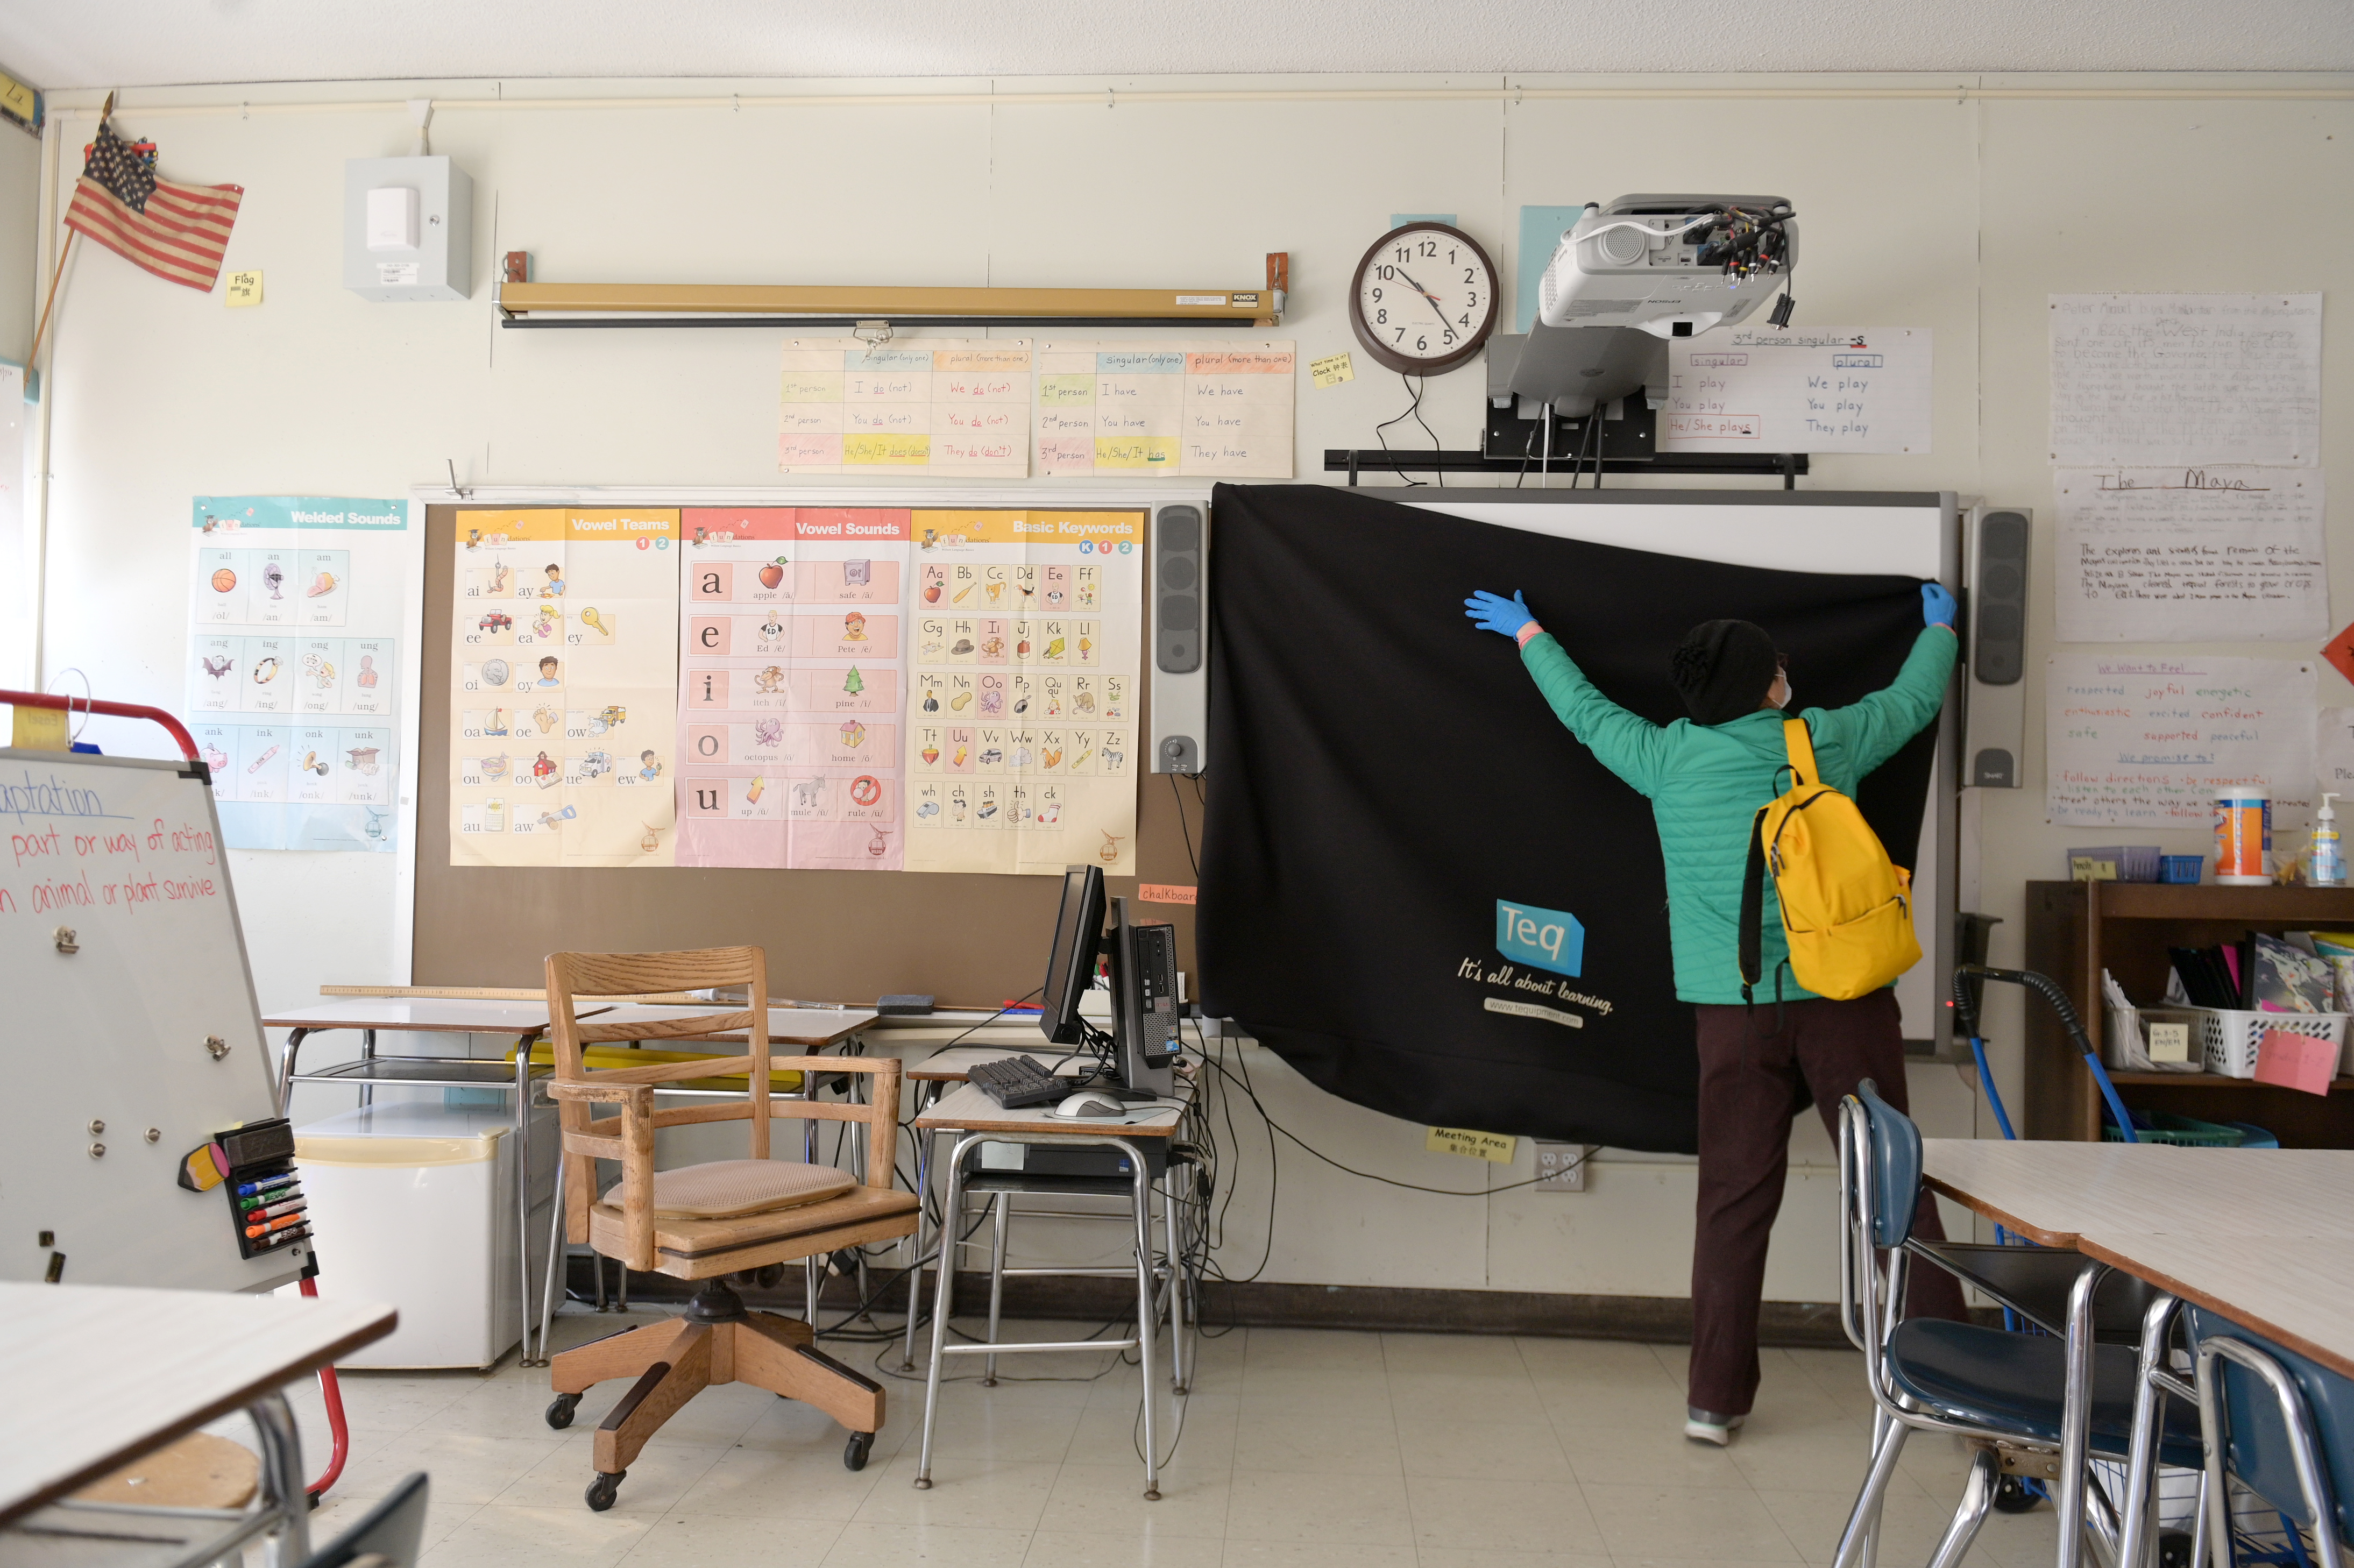 NEW YORK, NEW YORK - MAY 14: A teacher collects supplies needed to continue remote teaching through the end of the school year at Yung Wing School P.S. 124 on May 14, 2020 in New York City. In April, it was announced that NYC public schools would be closed at least through the end of the school year amid the spread of coronavirus (COVID-19). (Photo by Michael Loccisano/Getty Images)